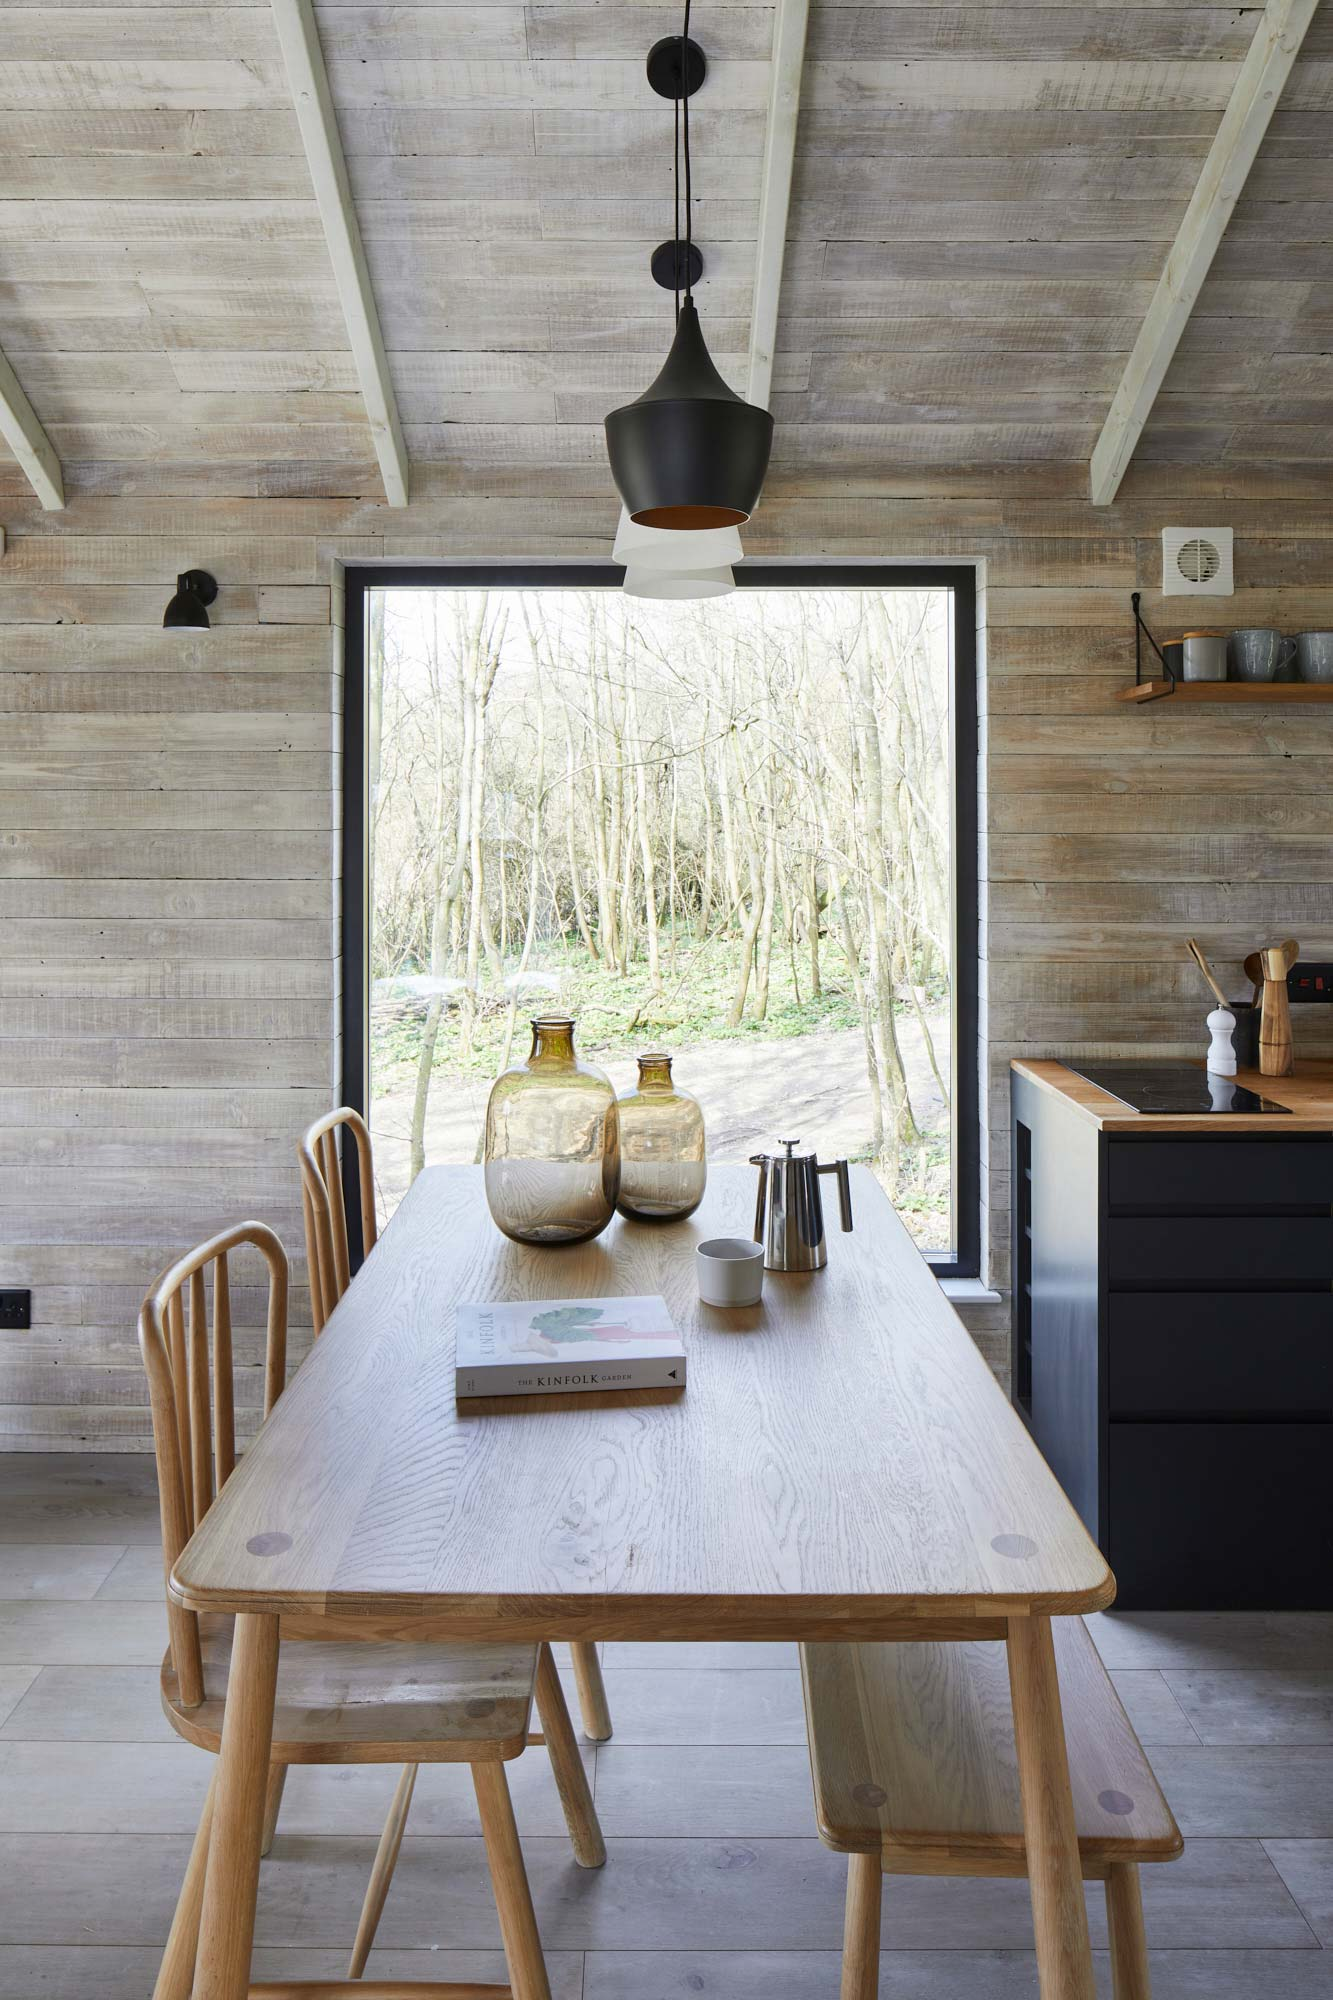 Dining table in rustic treehouse